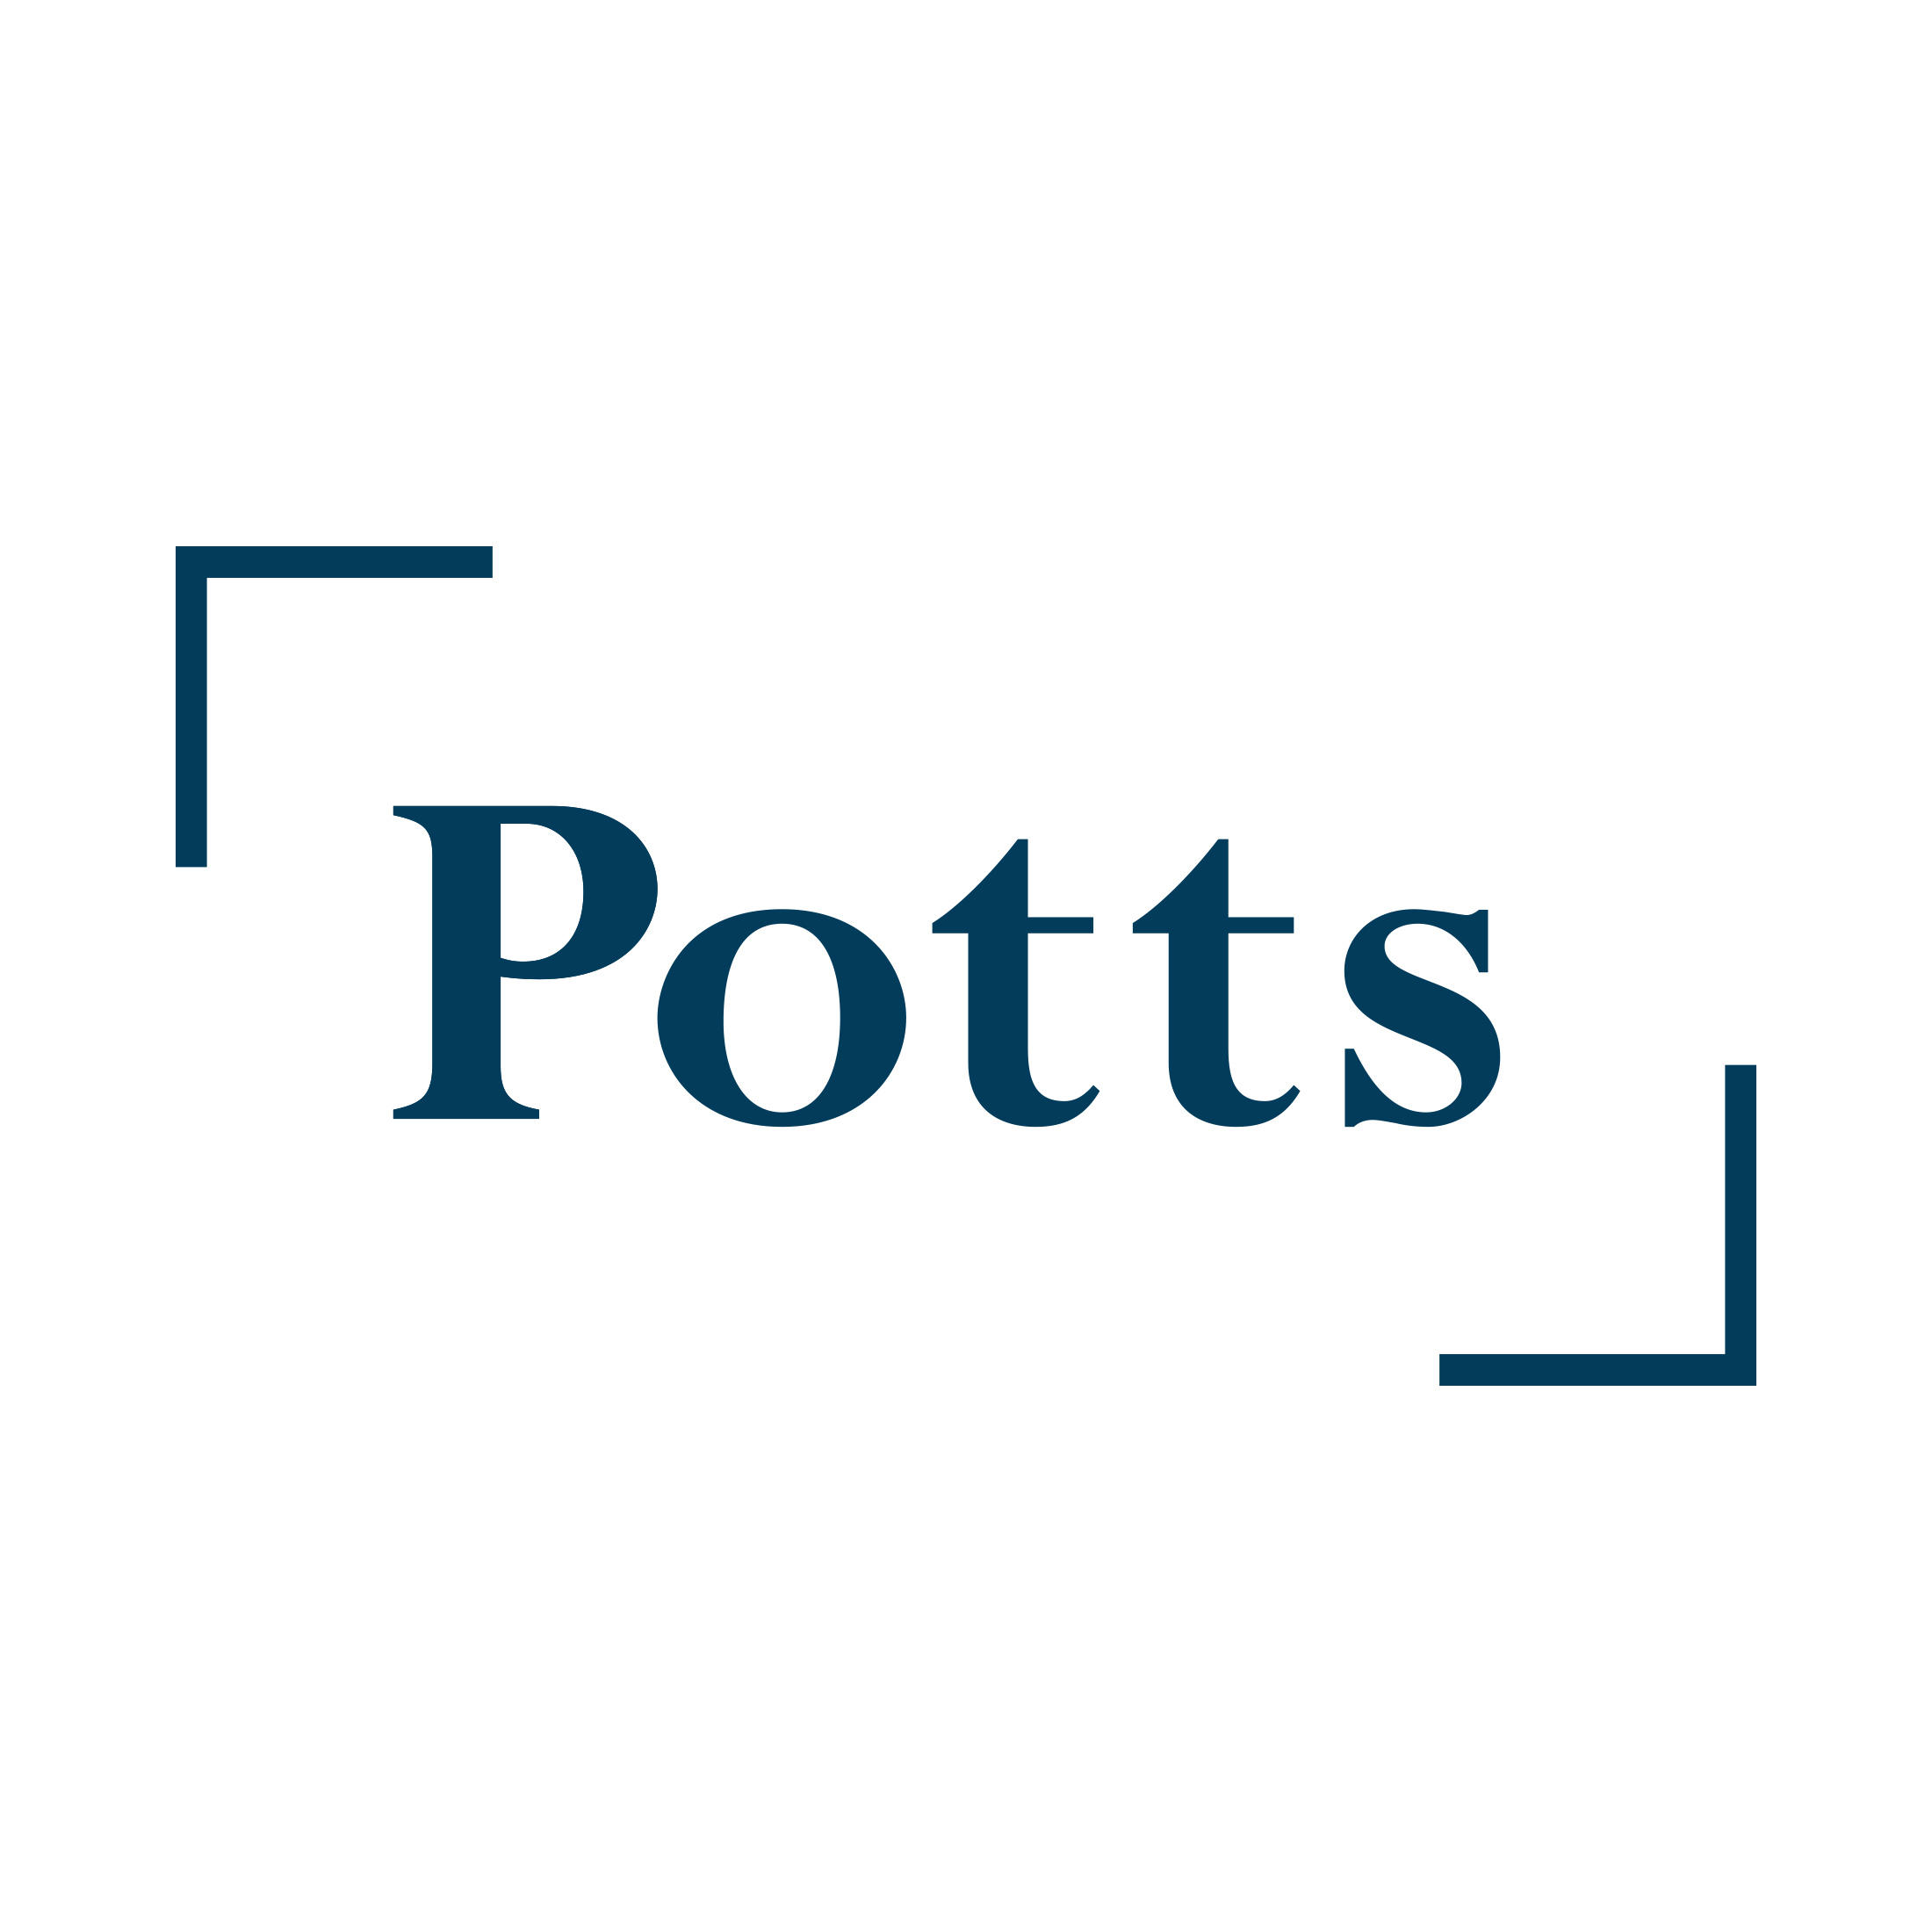 Potts Law Firm image 1